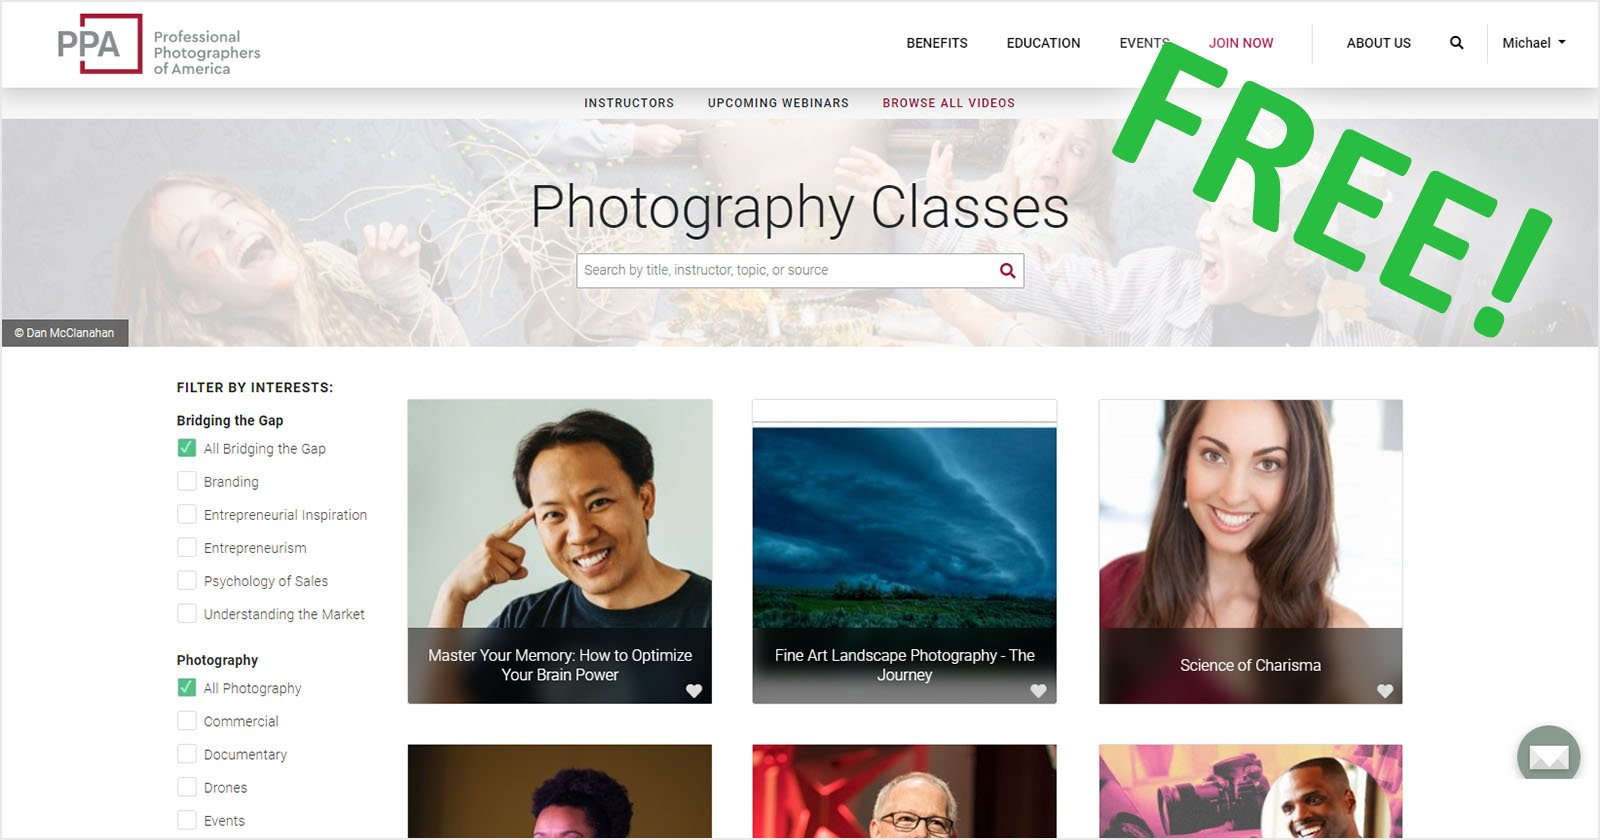 PPA's 1,100+ Online Photo Classes Are Currently Free